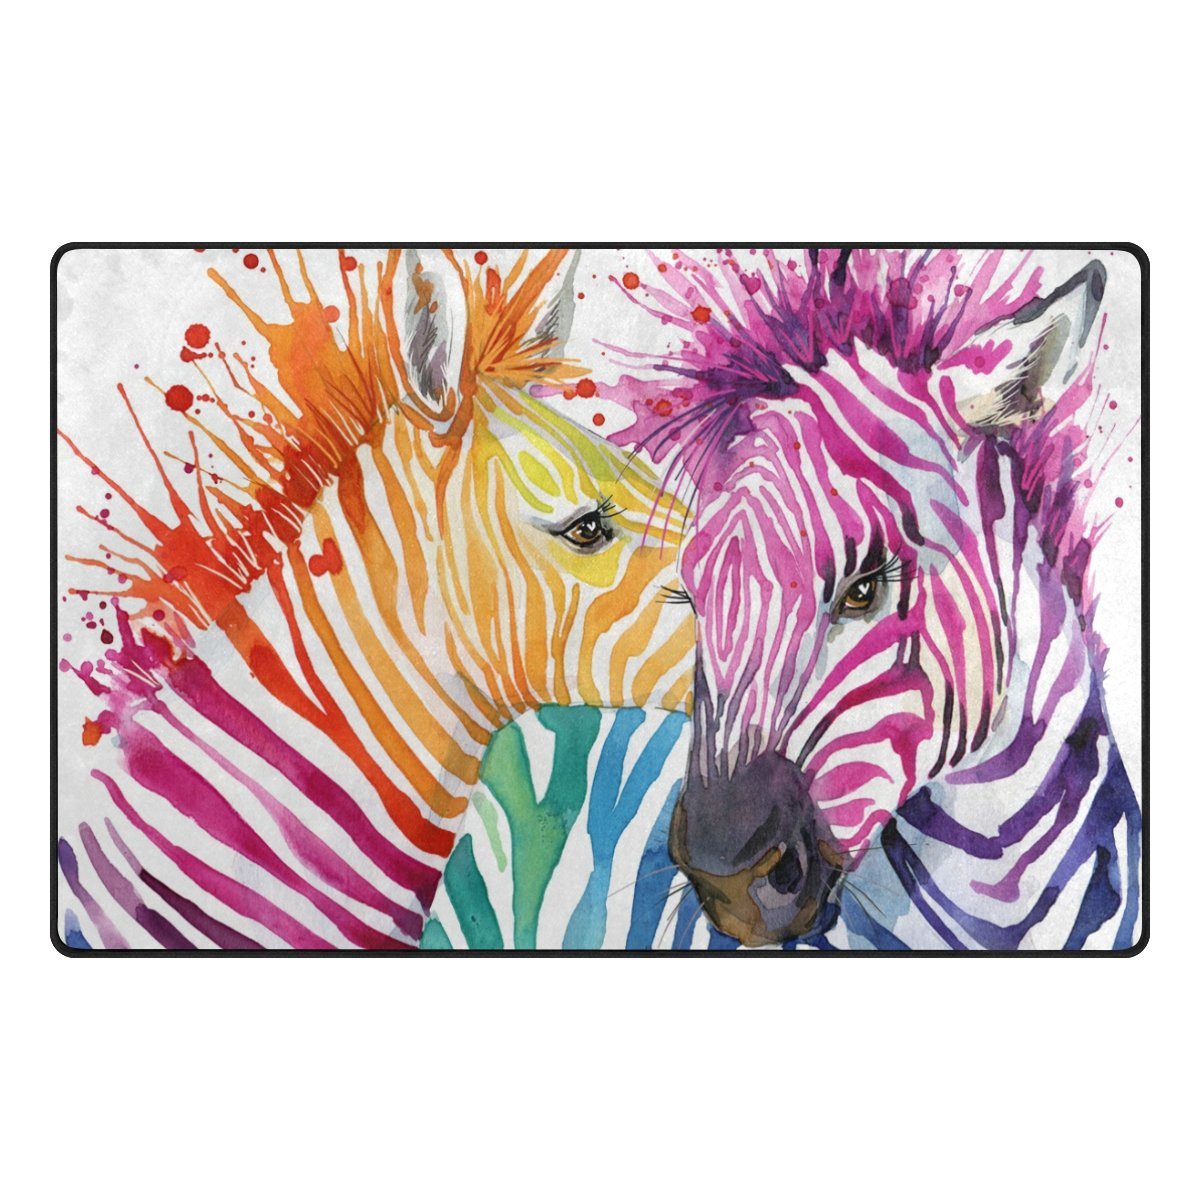 INGBAGS Super Soft Modern Zebra Love Watercolor Area Rugs Living Room Carpet Bedroom Rug for Children Play Solid Home Decorator Floor Rug and Carpets 60 x 39 Inch